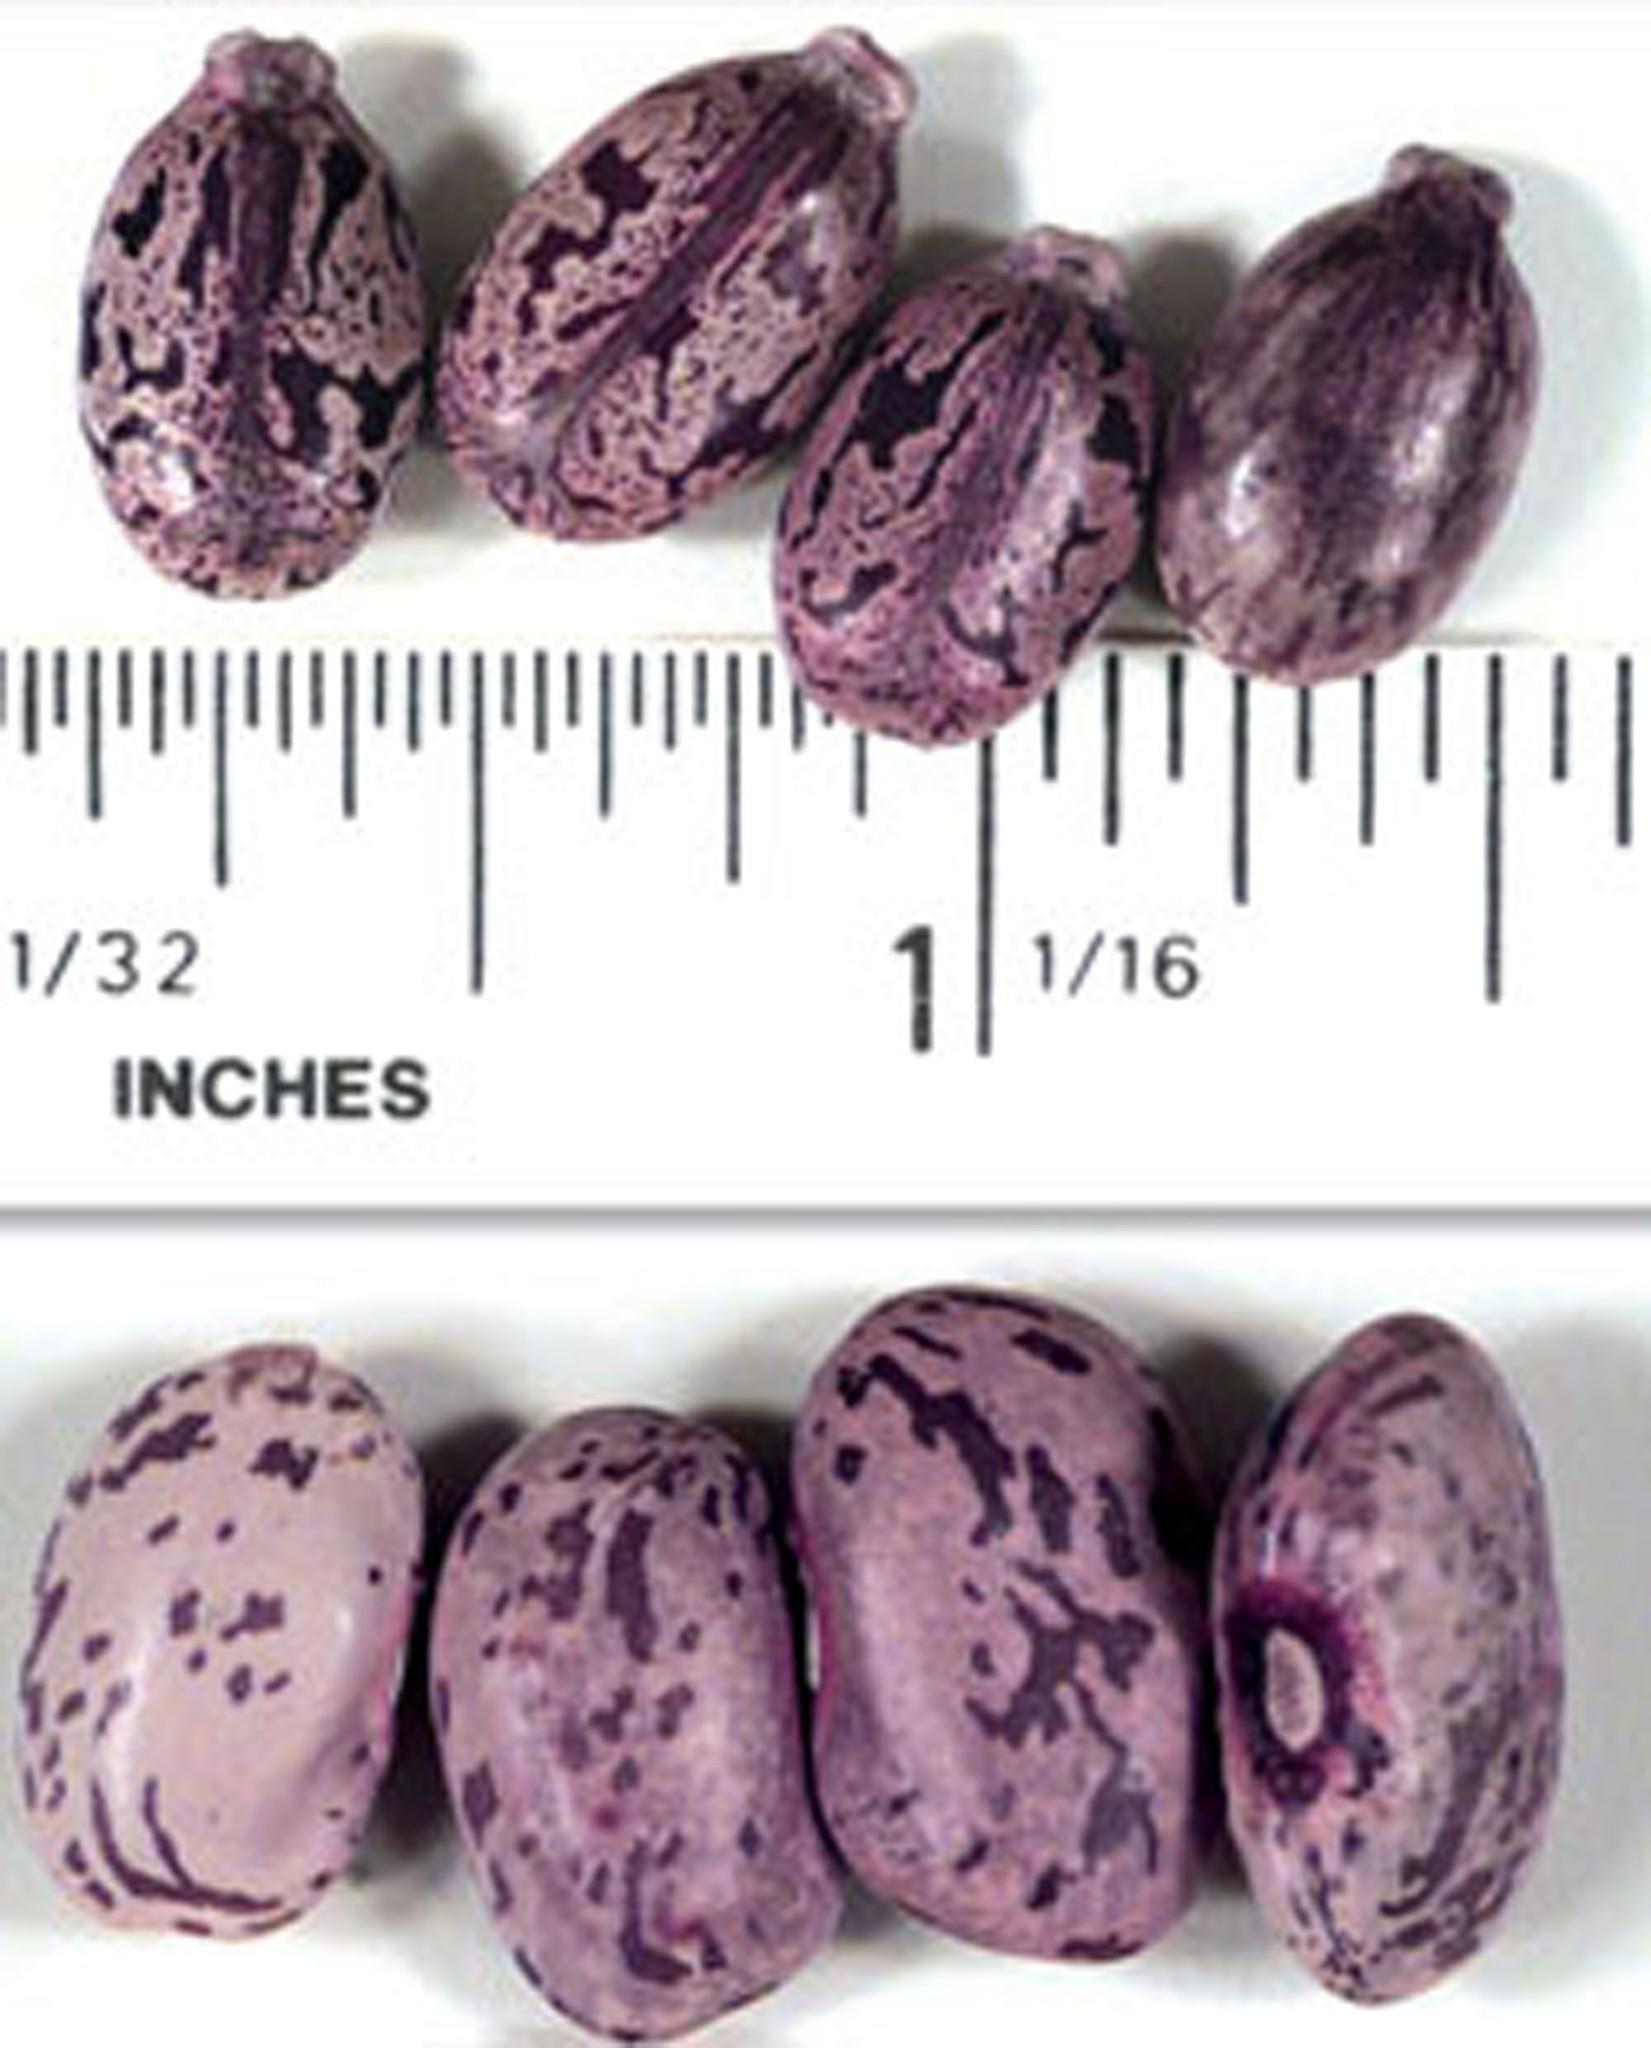 Castor beans (shown on top) are used to produce ricin, a deadly poison, as pictured in this handout photo from the National Counter Terrorism Centre. They are similar in color and size to pinto beans (shown on bottom), but have a small pointed protrusion on the end.